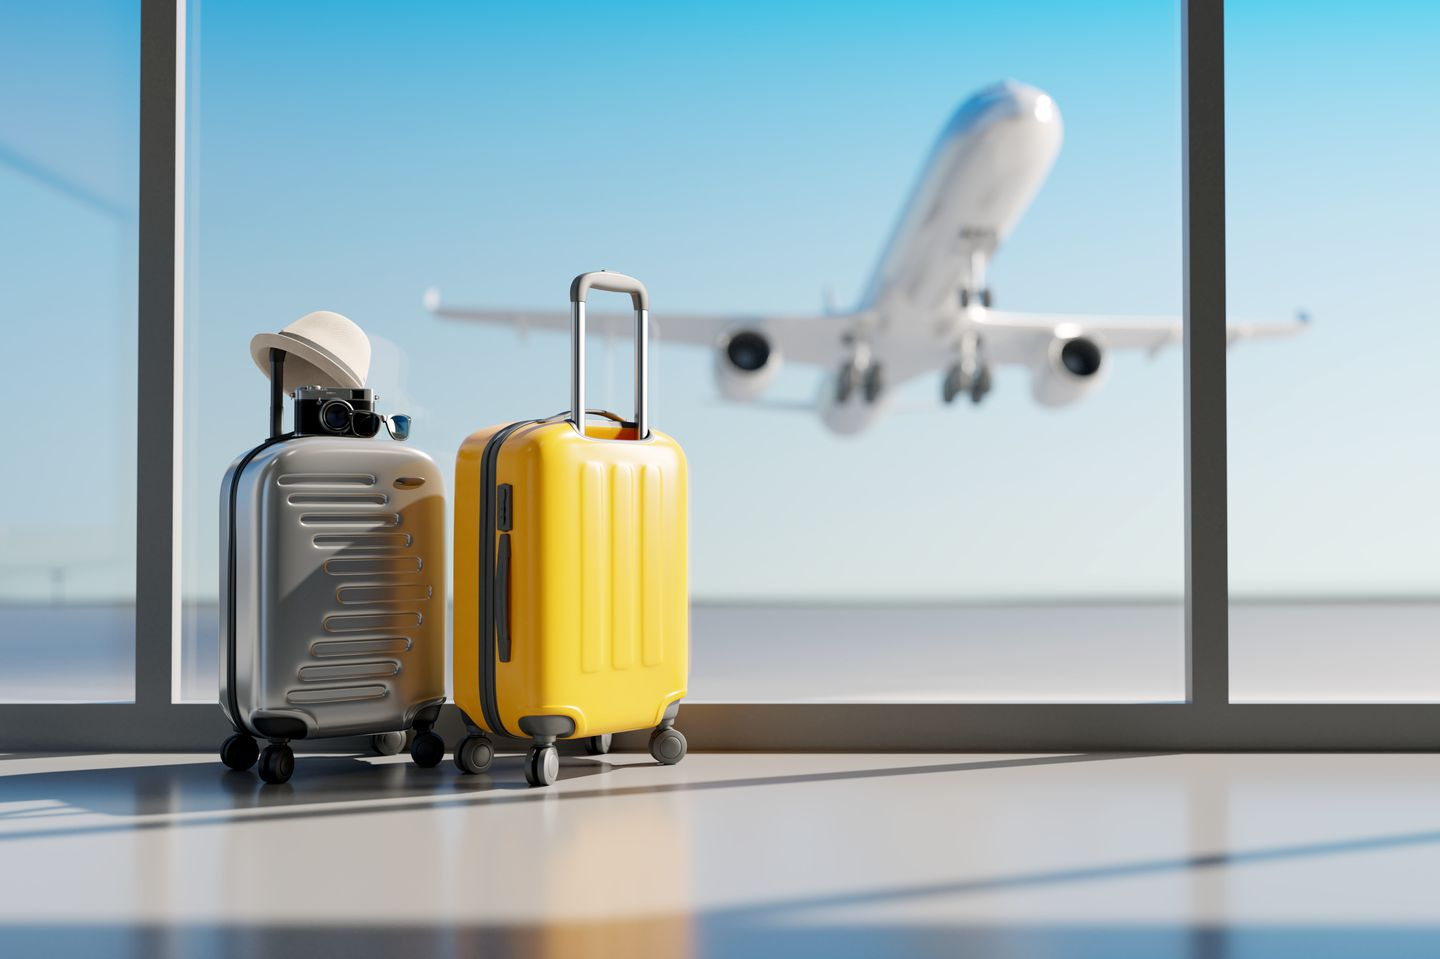 The science behind why people have missed traveling - The Boston Globe